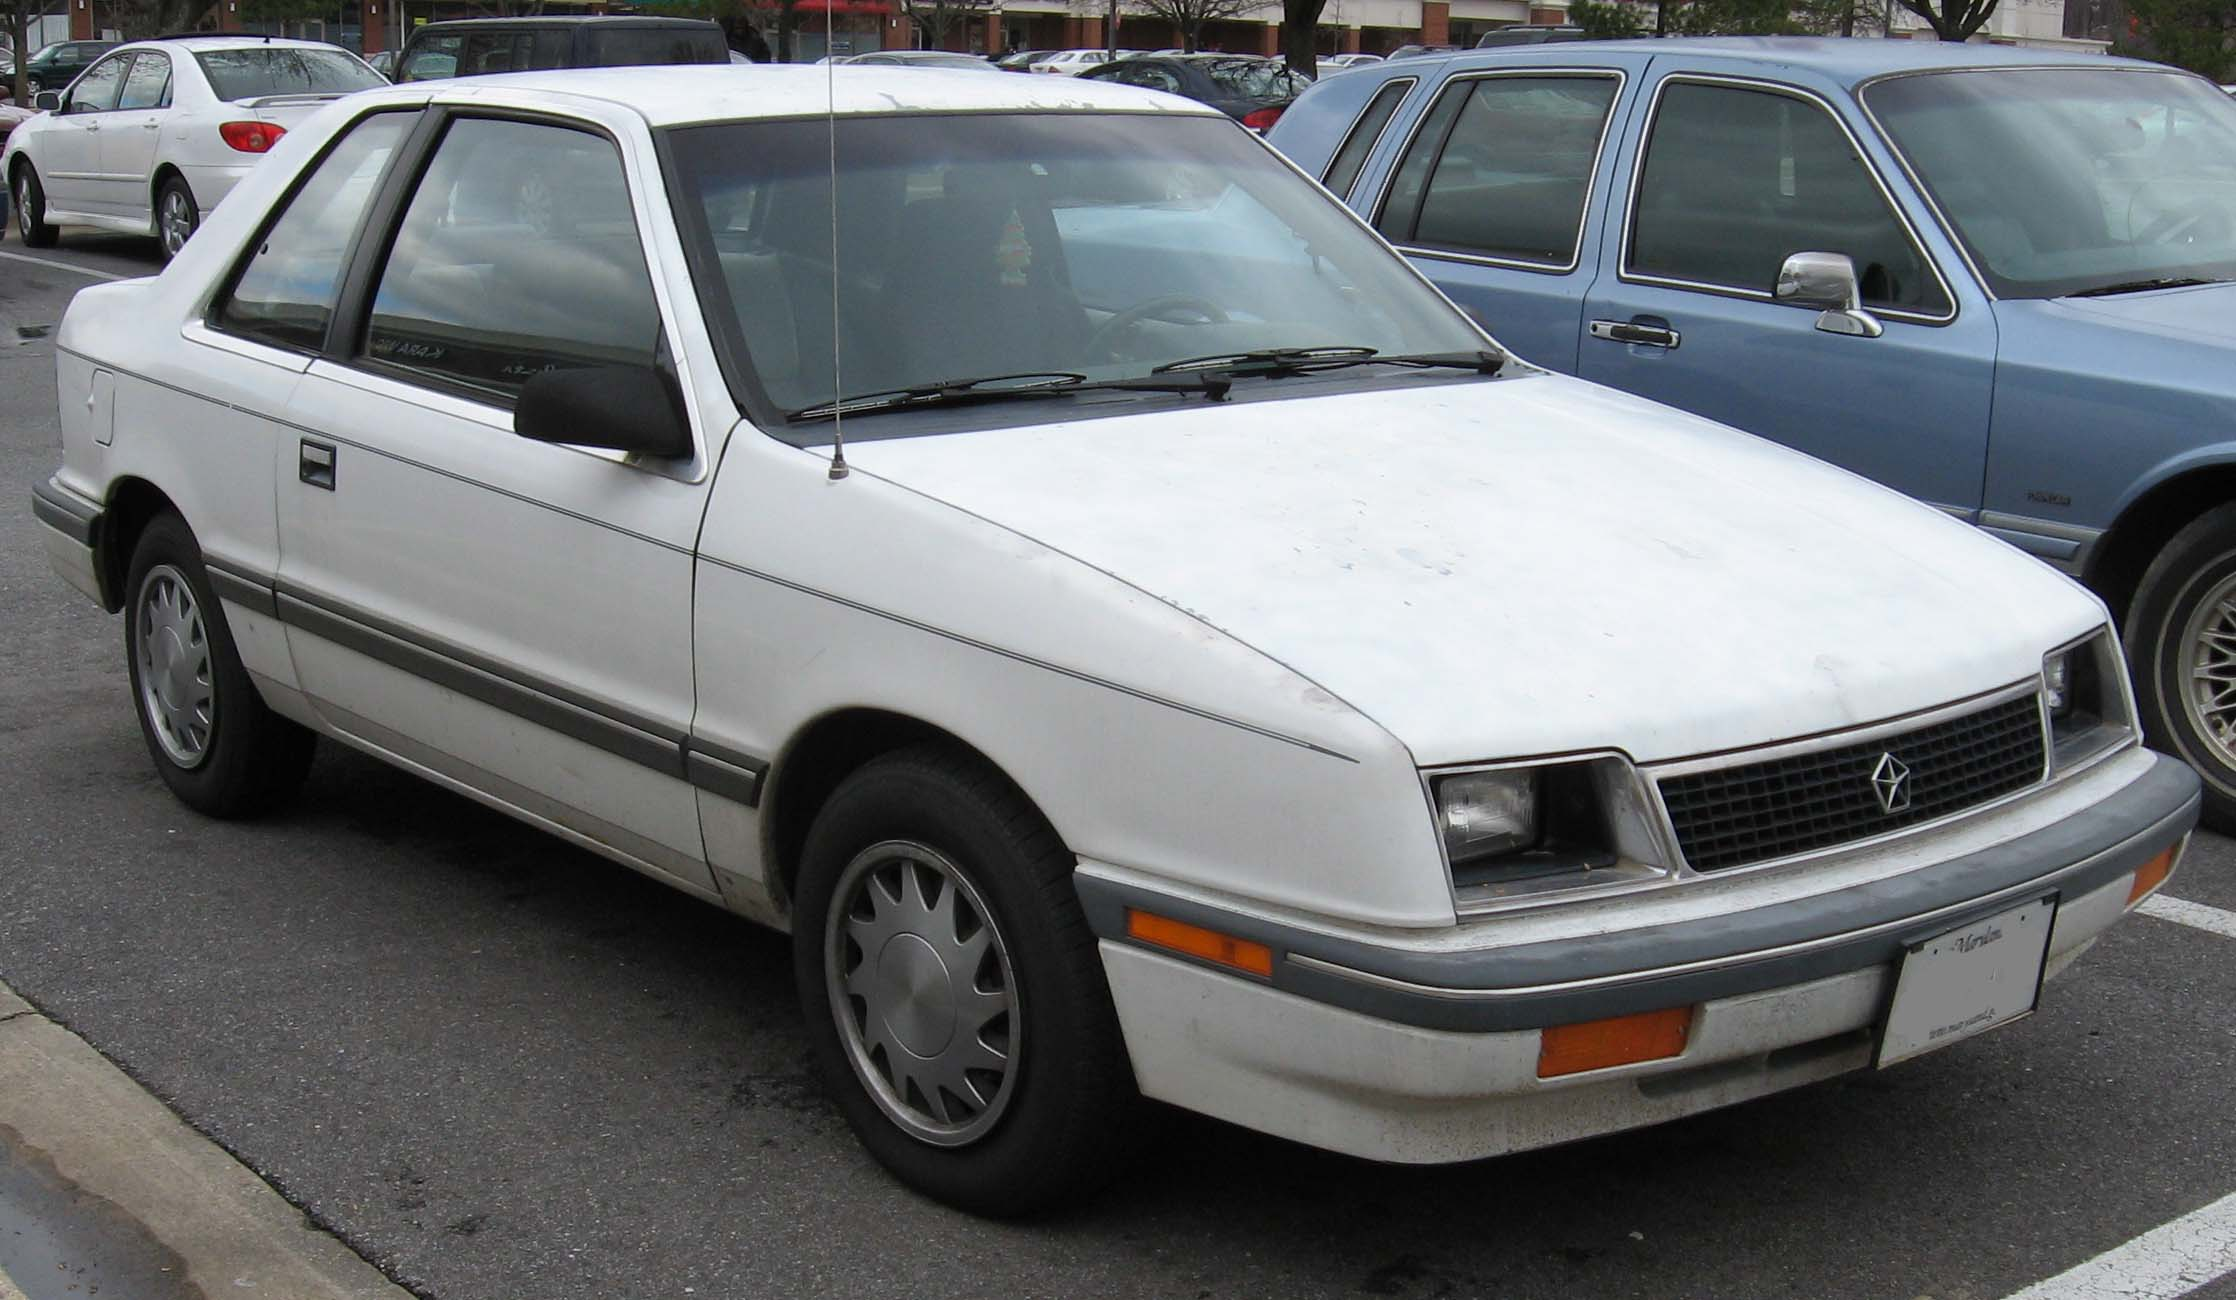 1993 Suzuki Sidekick Automatic Shifter Diagrams also 92 Plymouth Voyager Wiring Diagram as well 92 Geo Tracker Ignition Switch Wiring Diagram in addition RepairGuideContent additionally 1990 Geo Prizm Fuse Box Wiring. on 92 geo metro wiring diagram